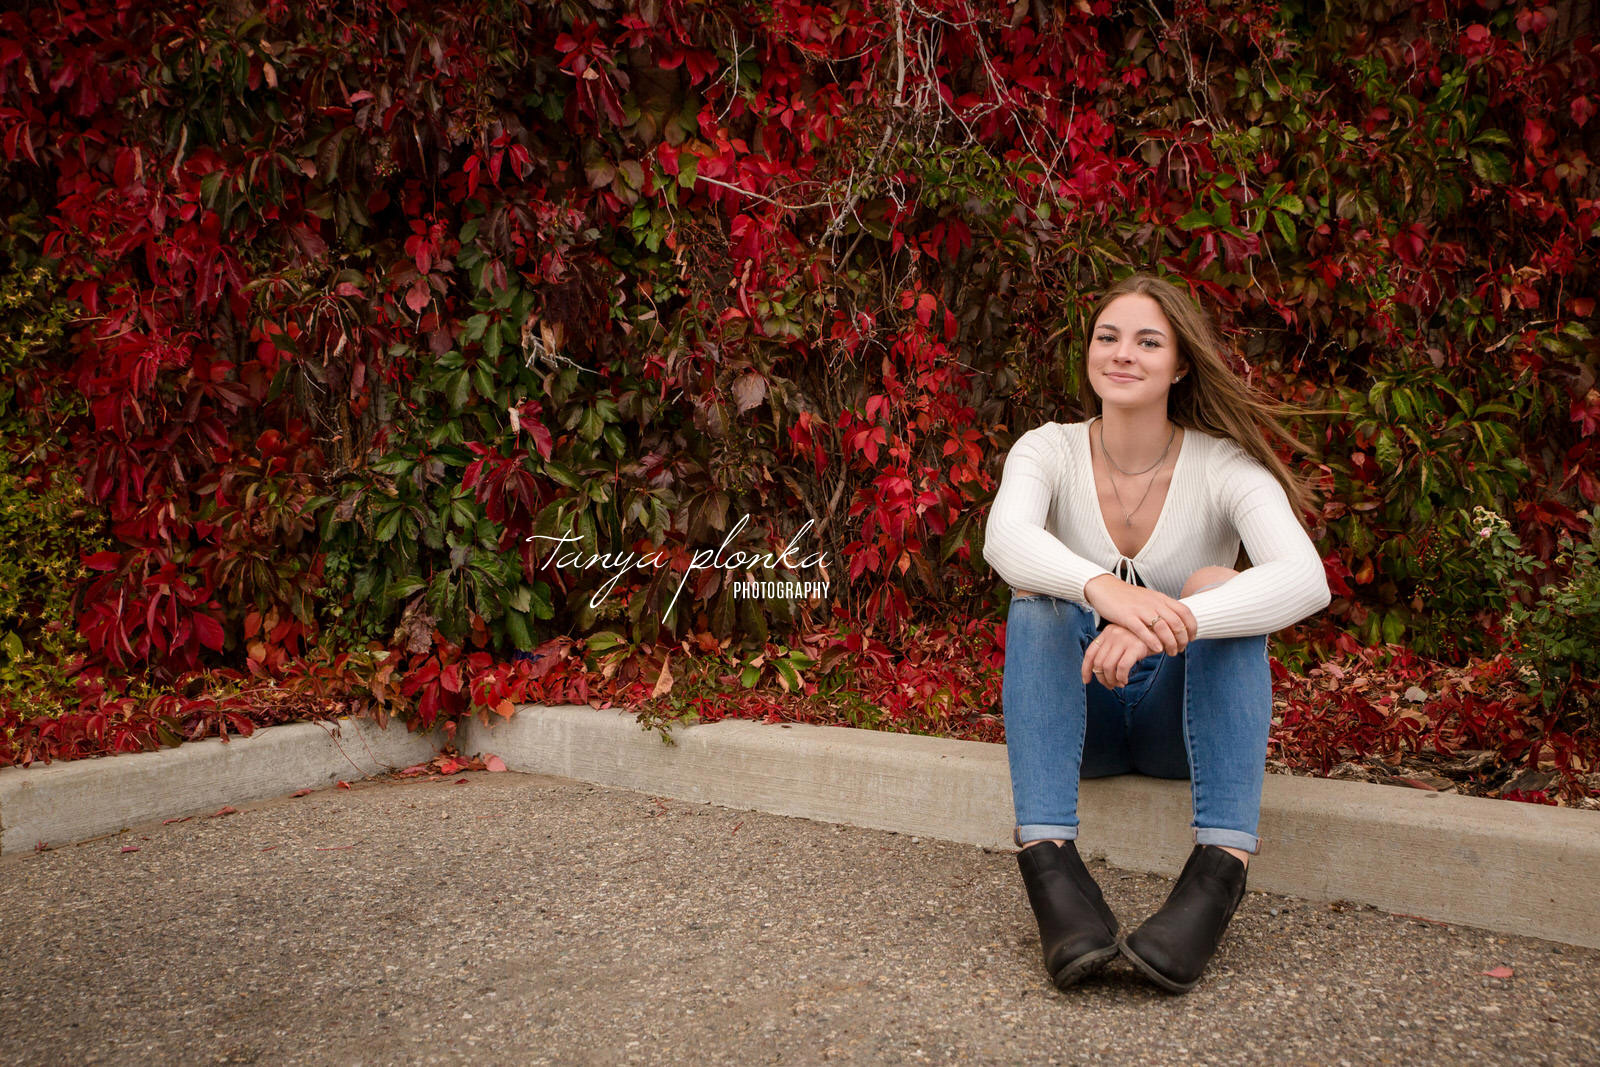 Teenager sitting in front of red leaves